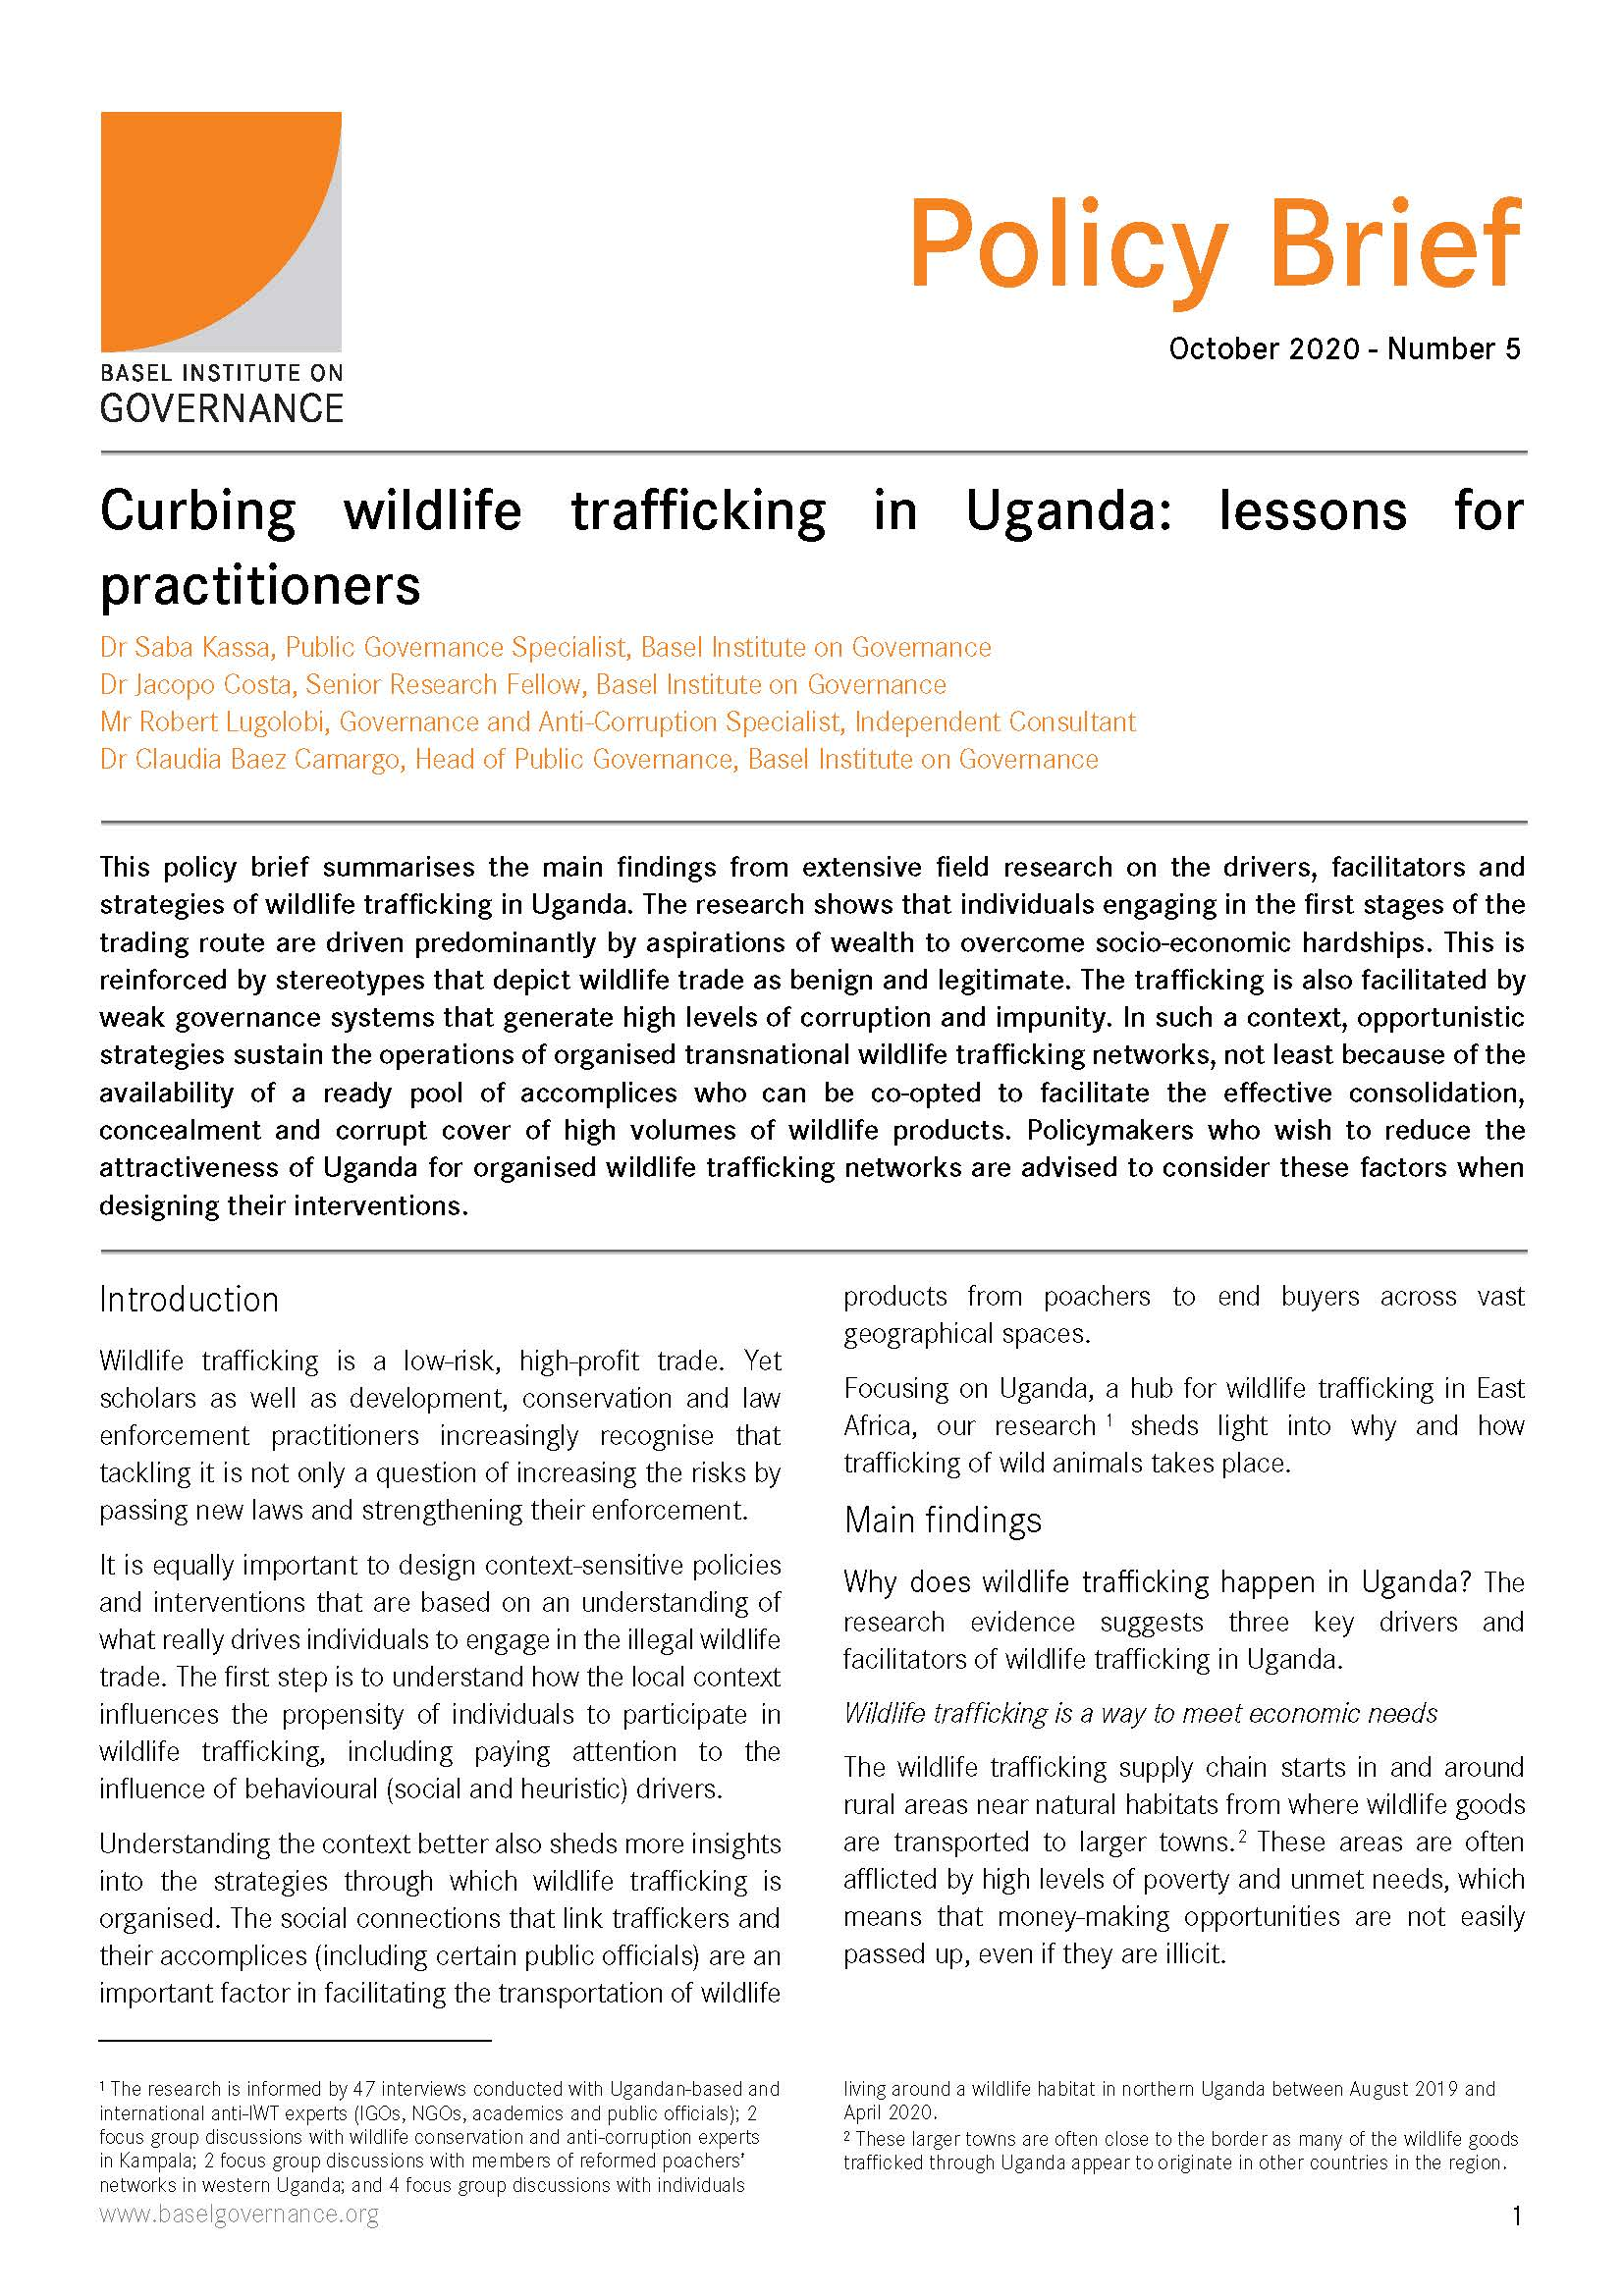 Policy brief - curbing wildlife trafficking in Uganda cover page